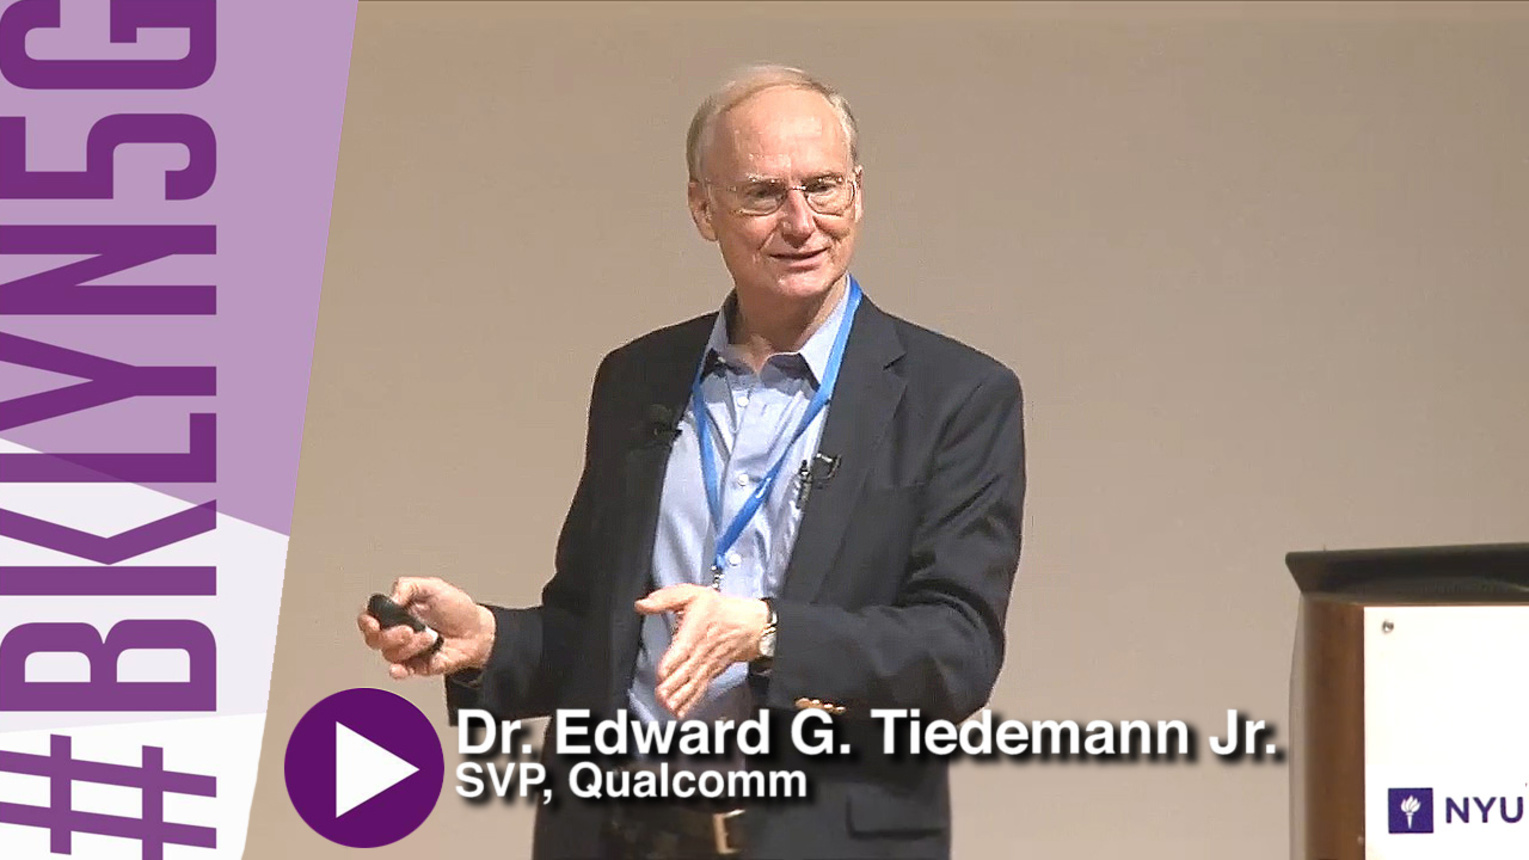 Brooklyn 5G - 2015 - Edward G. Tiedemann Jr. - Multiple Antennas in Wireless Systems (MAWS)